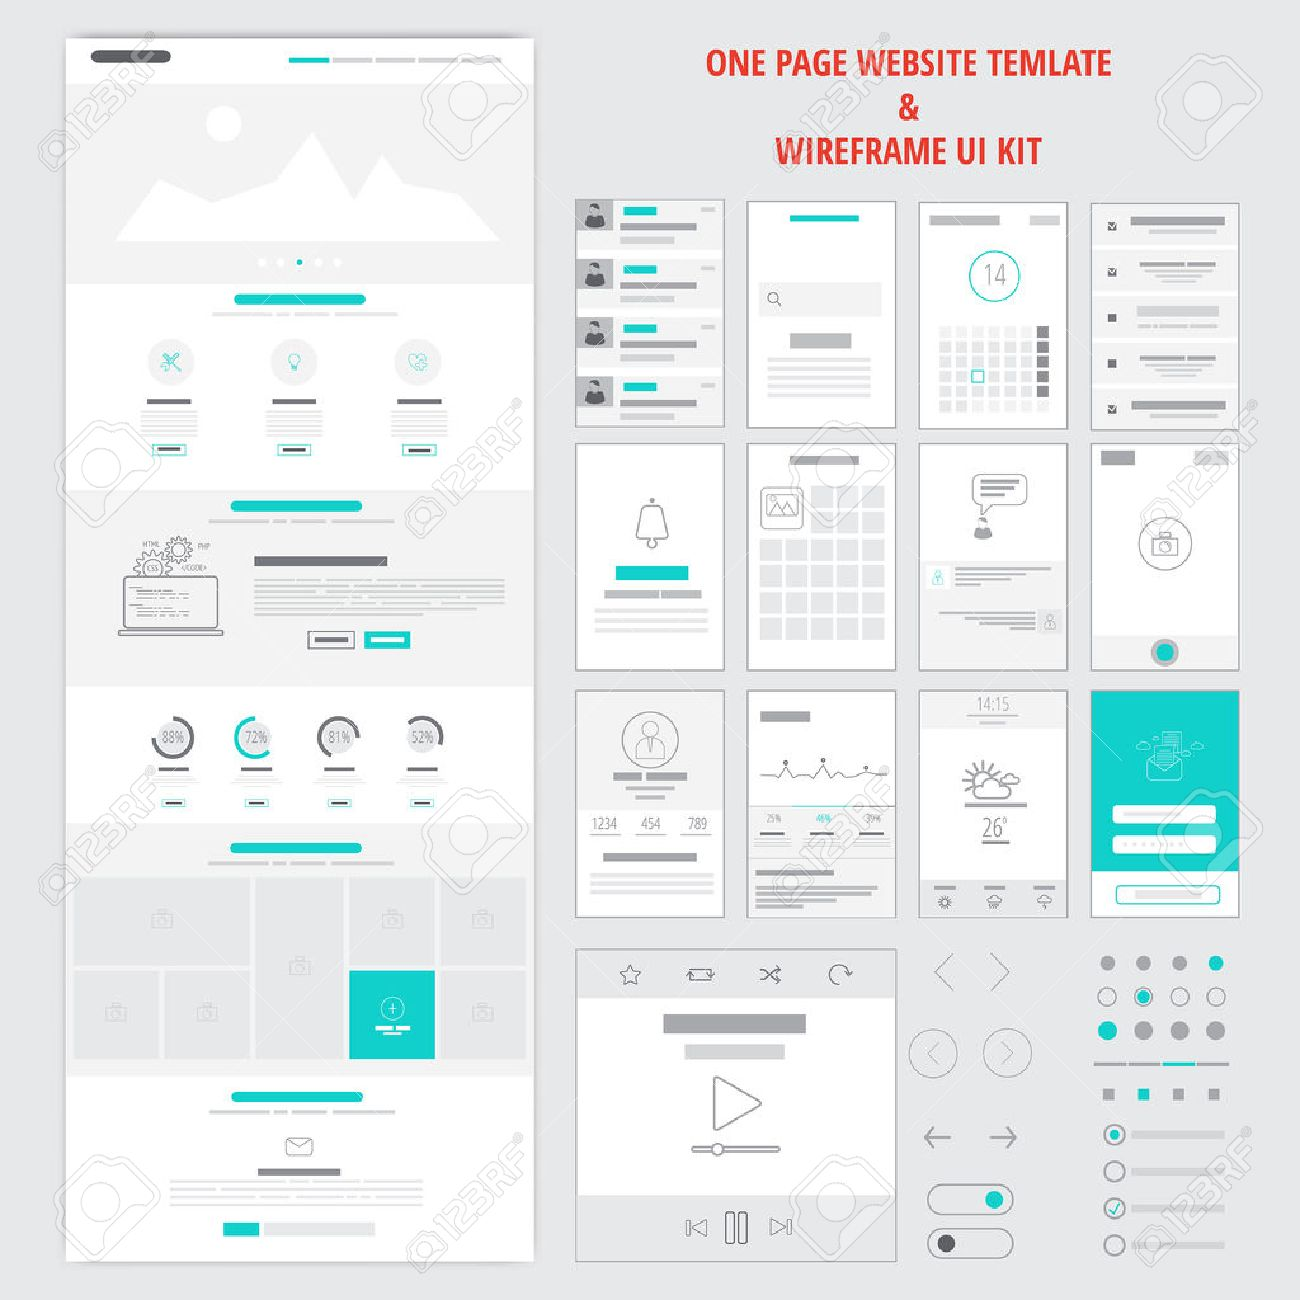 Fllat Responsive One Page Website Template And Mobile App Wireframe